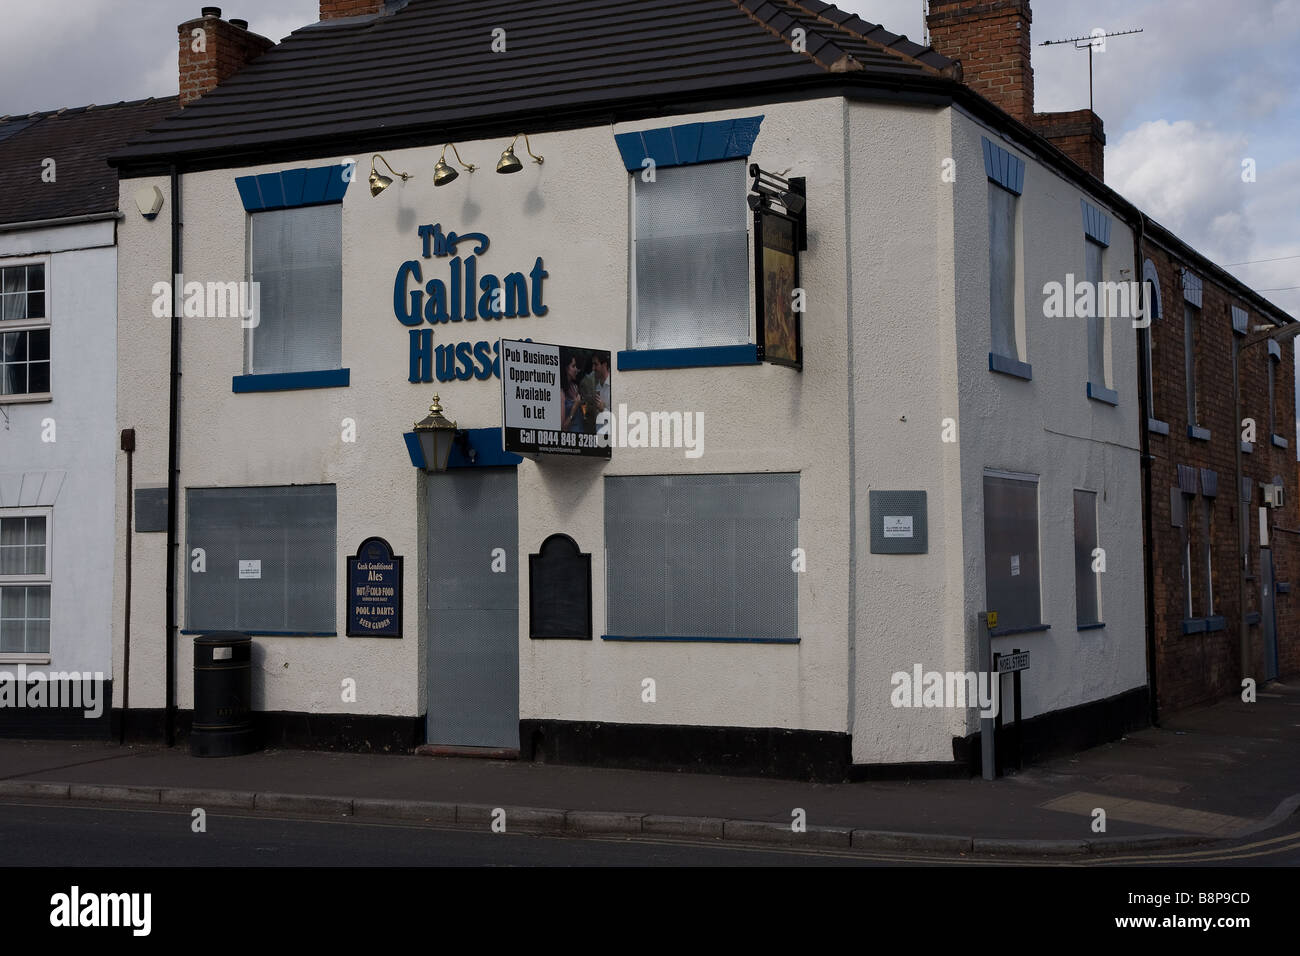 The gallant hussar closed down and boarded up - Stock Image